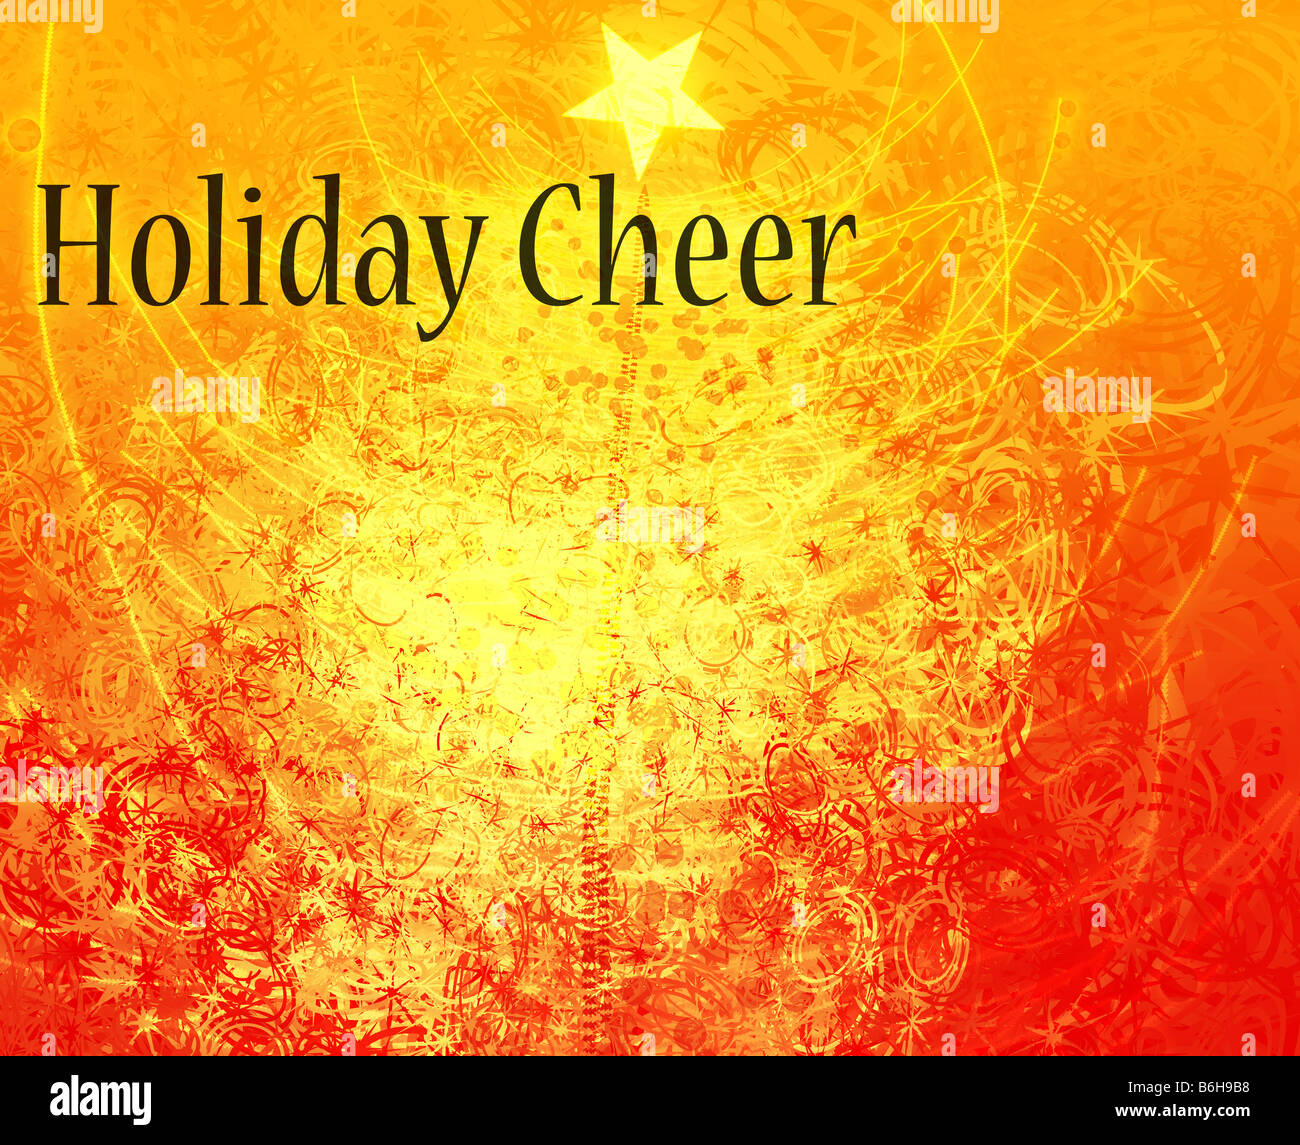 Merry Christmas Happy Holidays Greeting Card Design Stock Photo